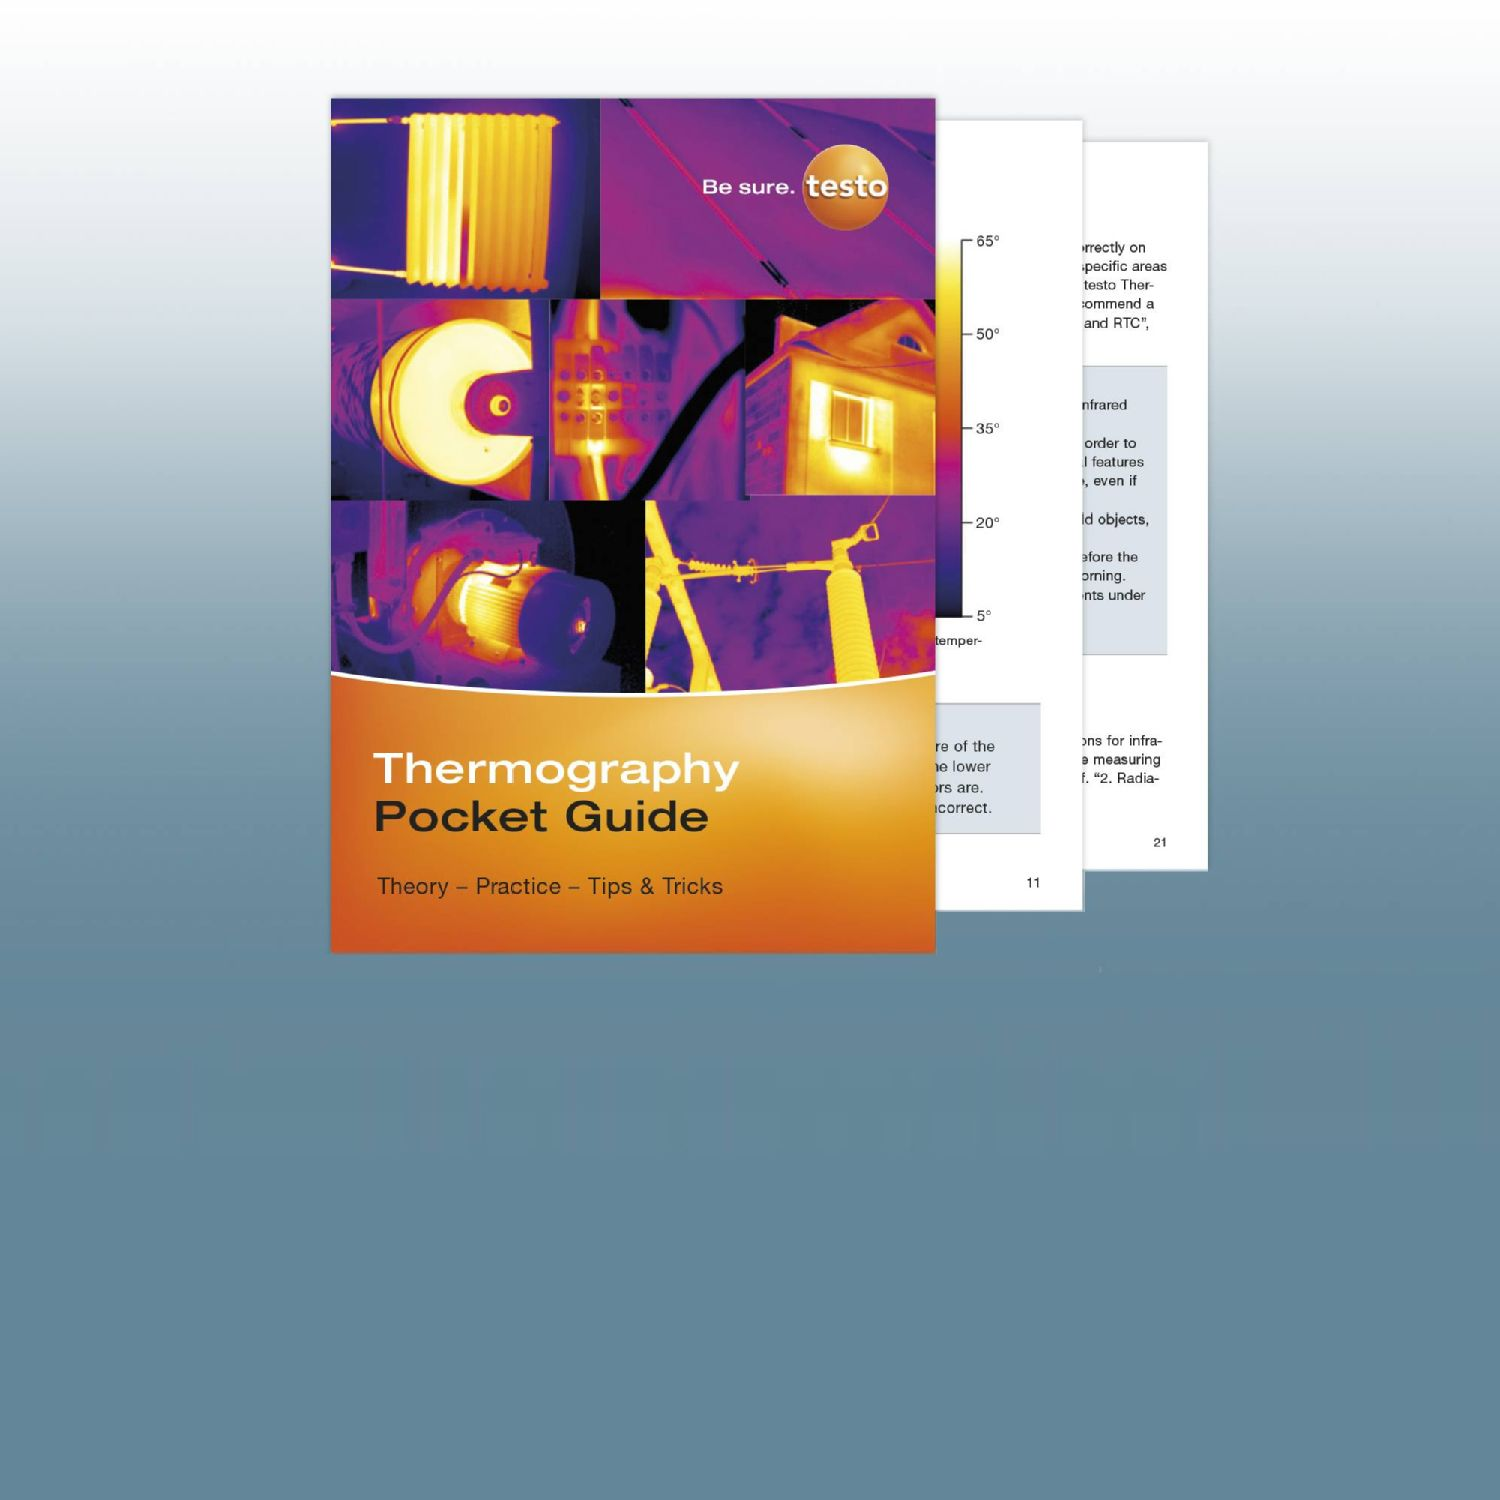 Pocket-Guide-Thermography-2000x2000.png